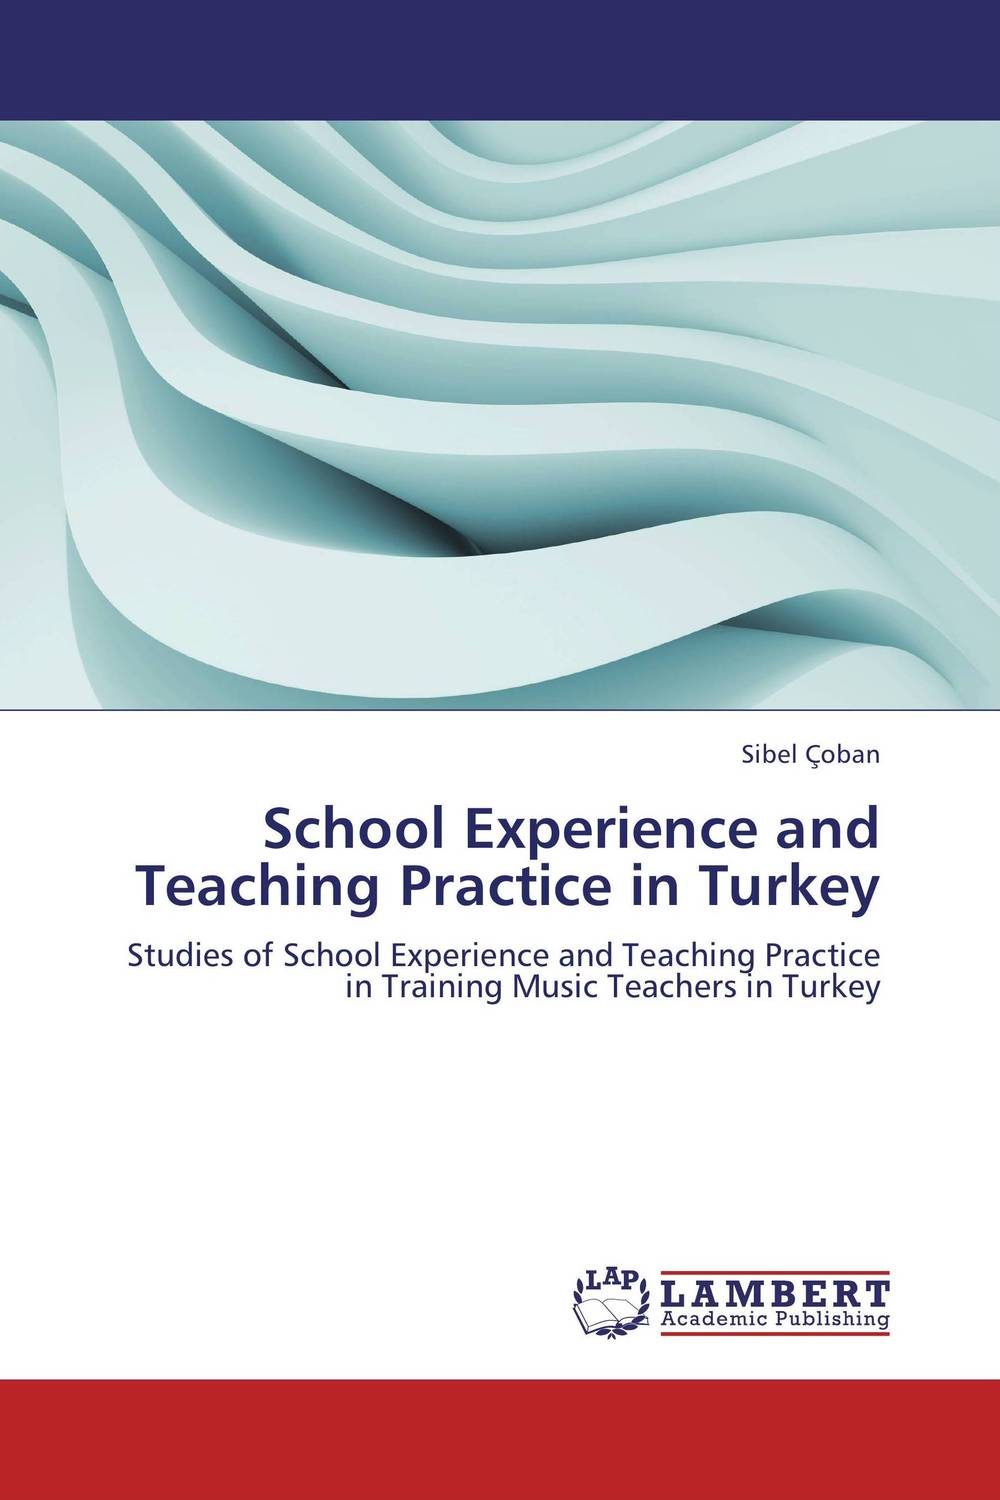 School Experience and Teaching Practice in Turkey dimitrios stergiou good teaching in tourism higher education